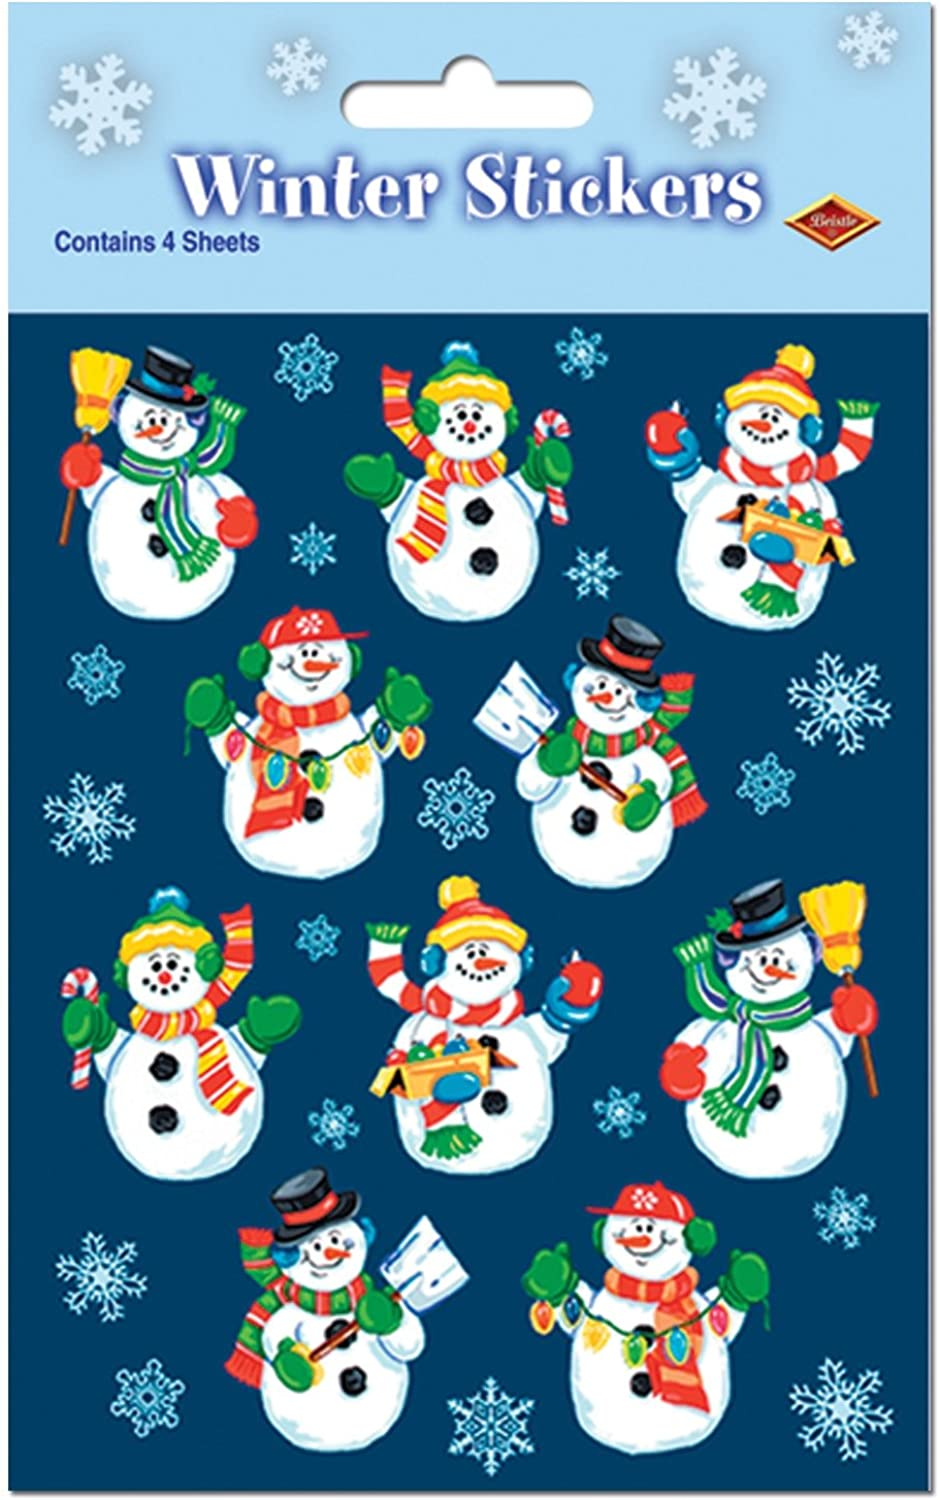 Beistle Snowman Stickers Sheet, 4-3 4-Inch by 7-1 2-Inch, 4 Sheets Per Package